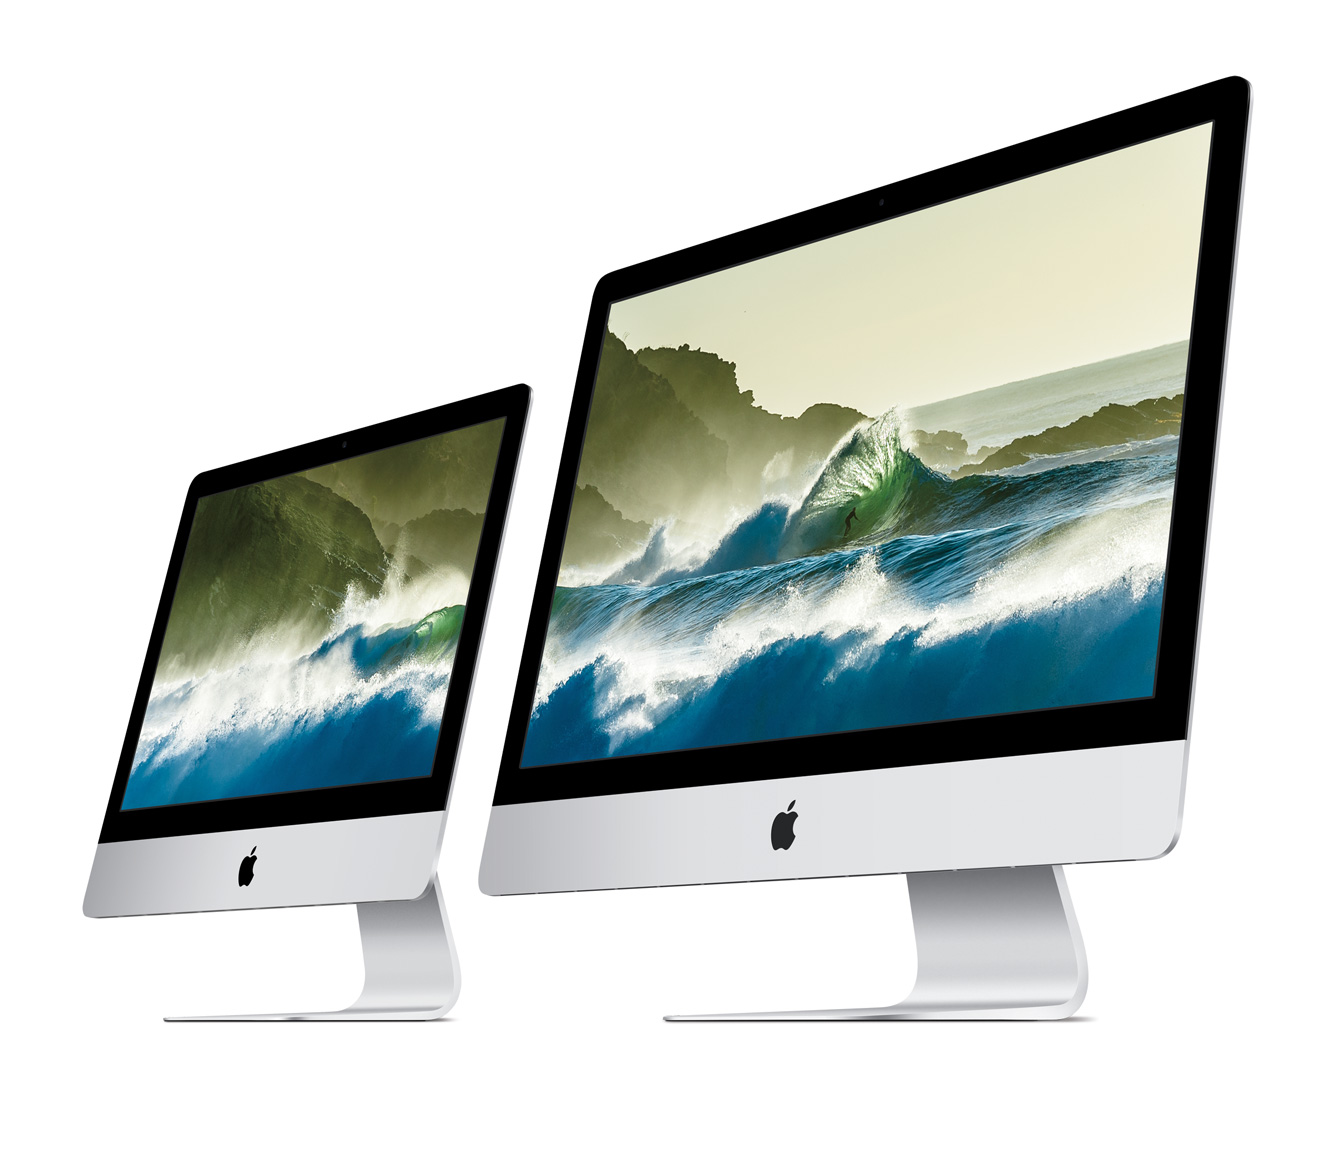 apple 21 5 inch imac with retina 4k display ilounge mac. Black Bedroom Furniture Sets. Home Design Ideas